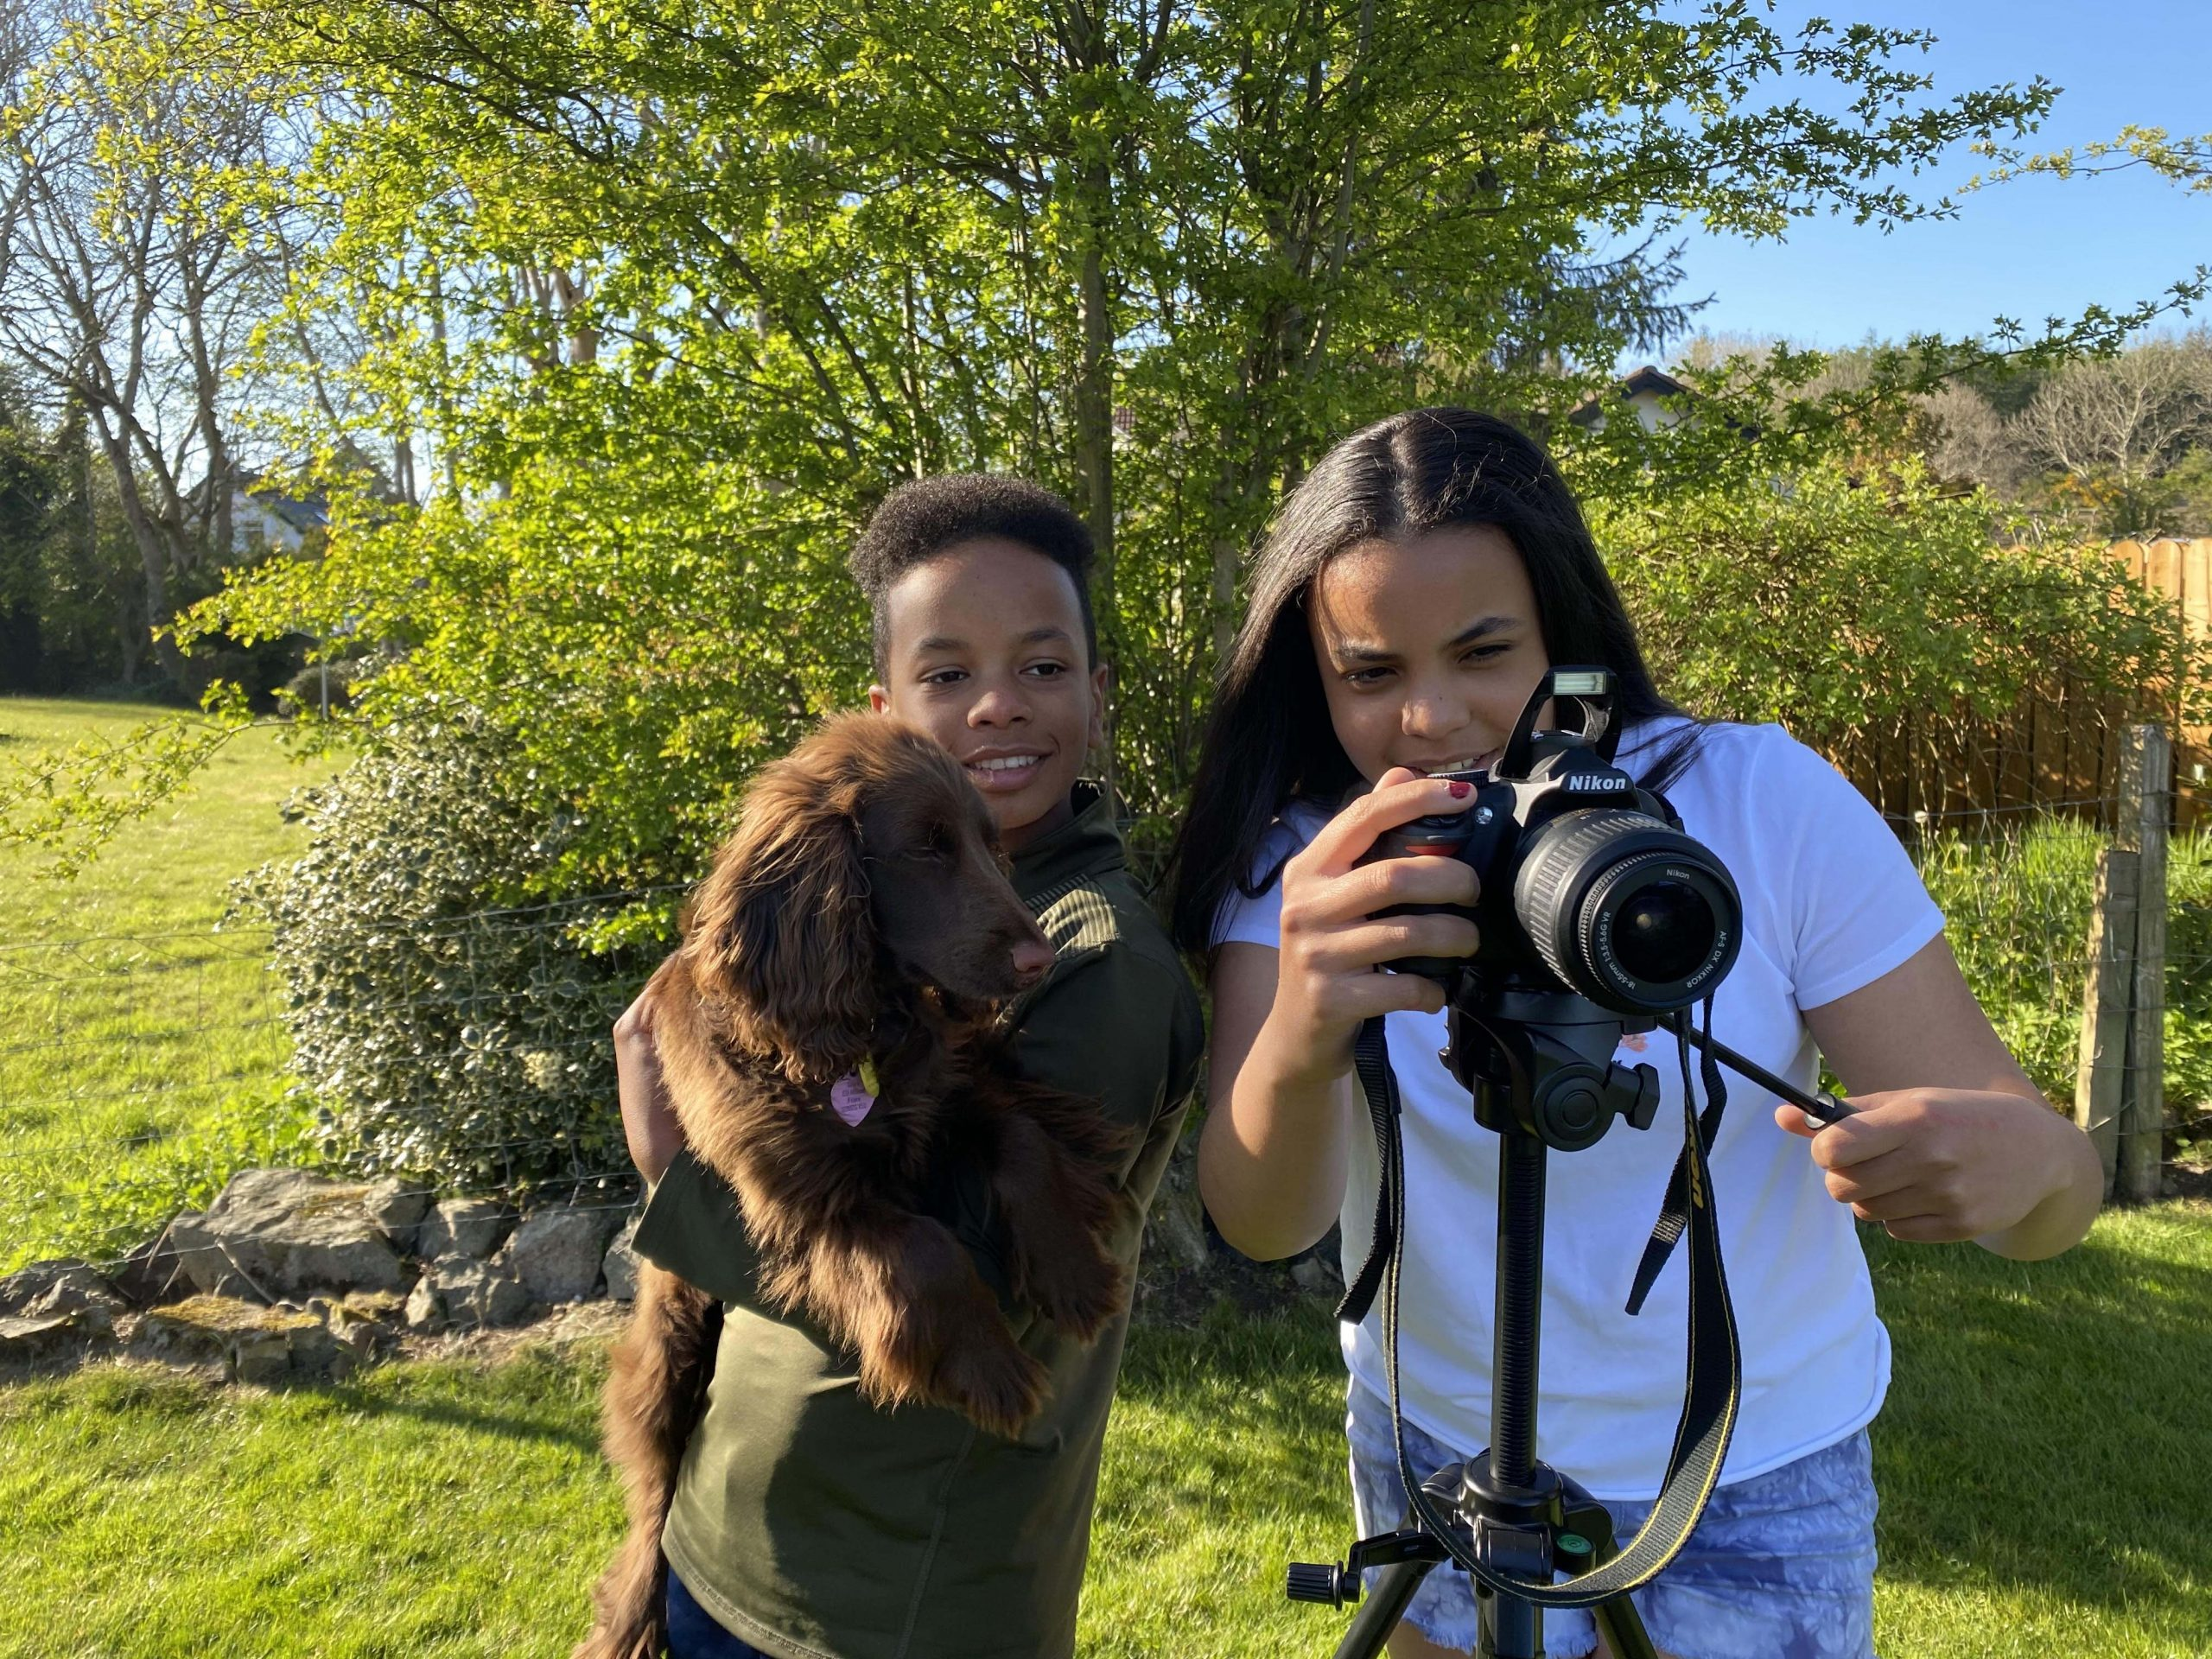 New competition encourages young filmmakers to explore wonders of nature